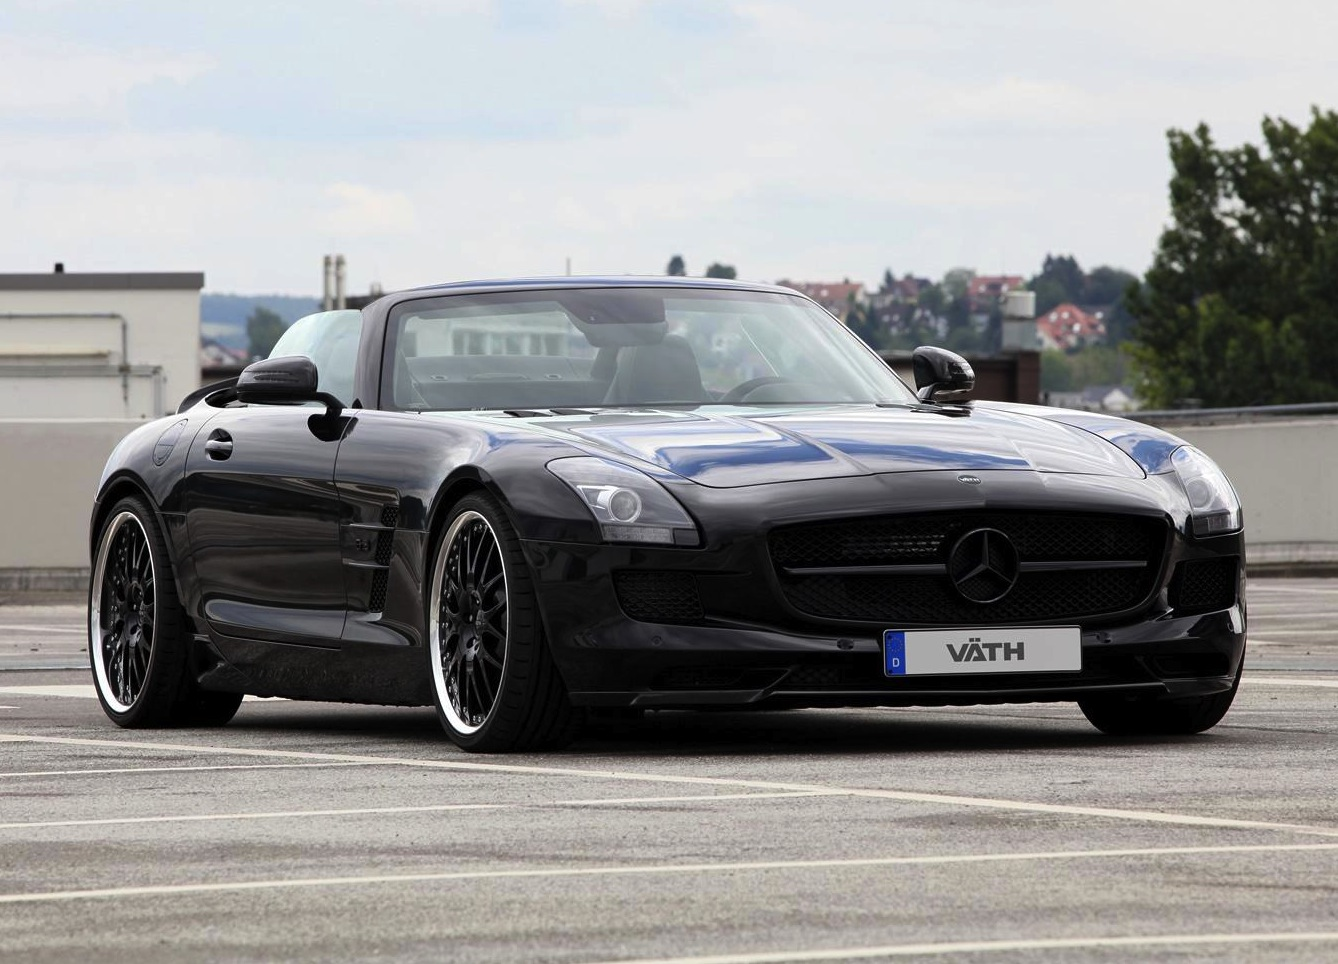 2012 mercedes benz sls amg roadster reviews mercedes for 2012 mercedes benz sls amg